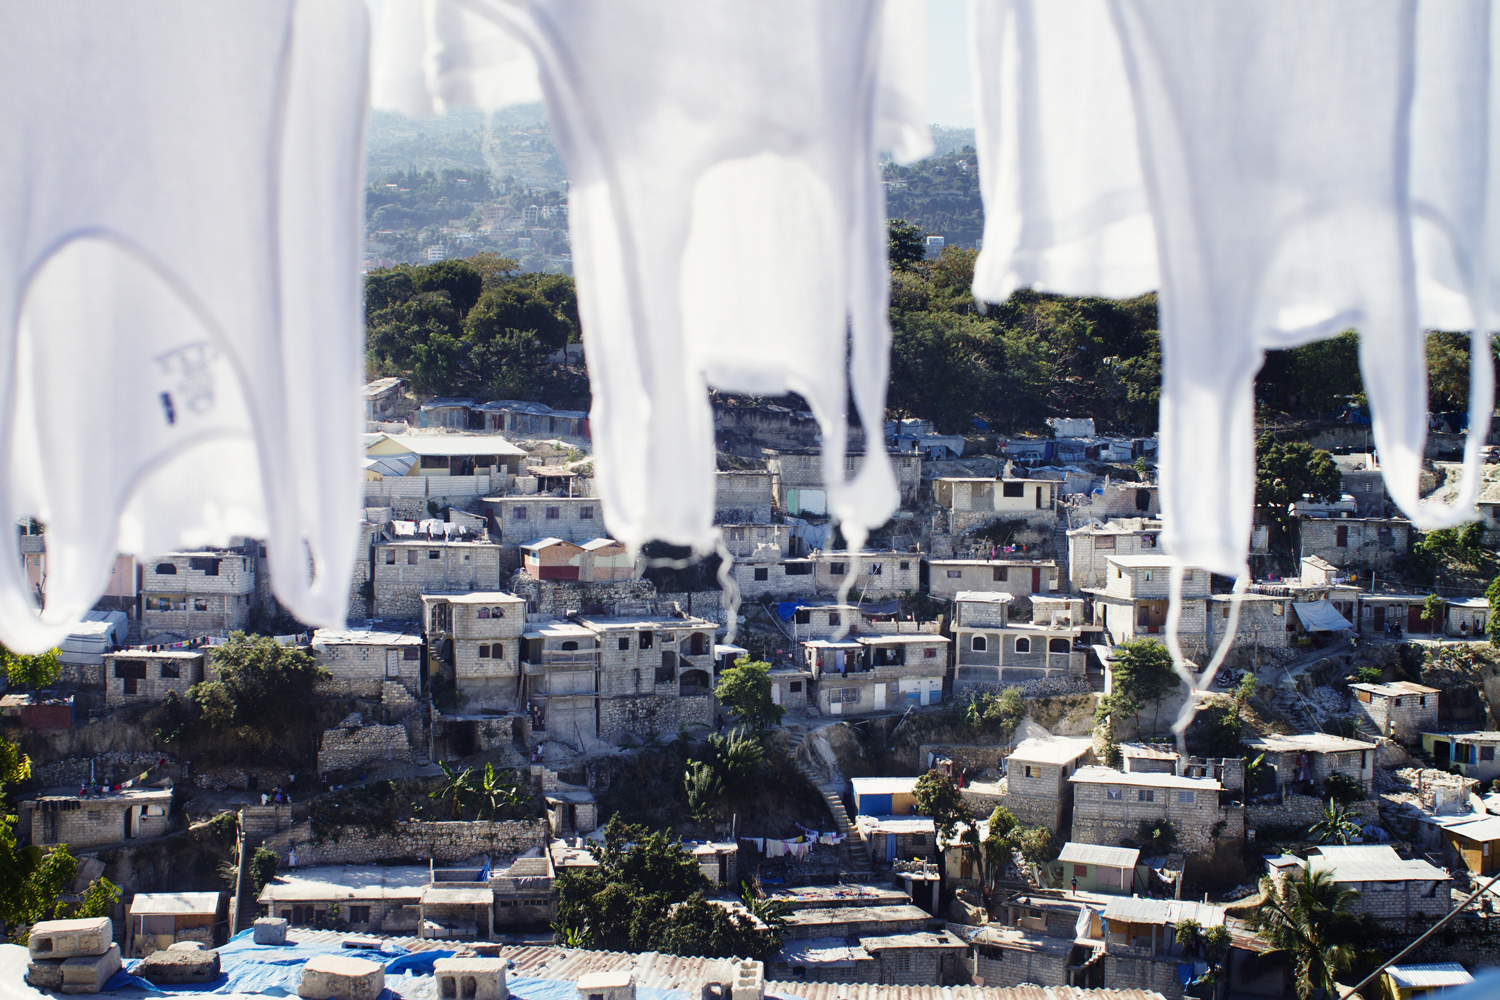 Views of Nerette in Port-au-Prince, a residential area where many houses are still needing repairs. 2012.